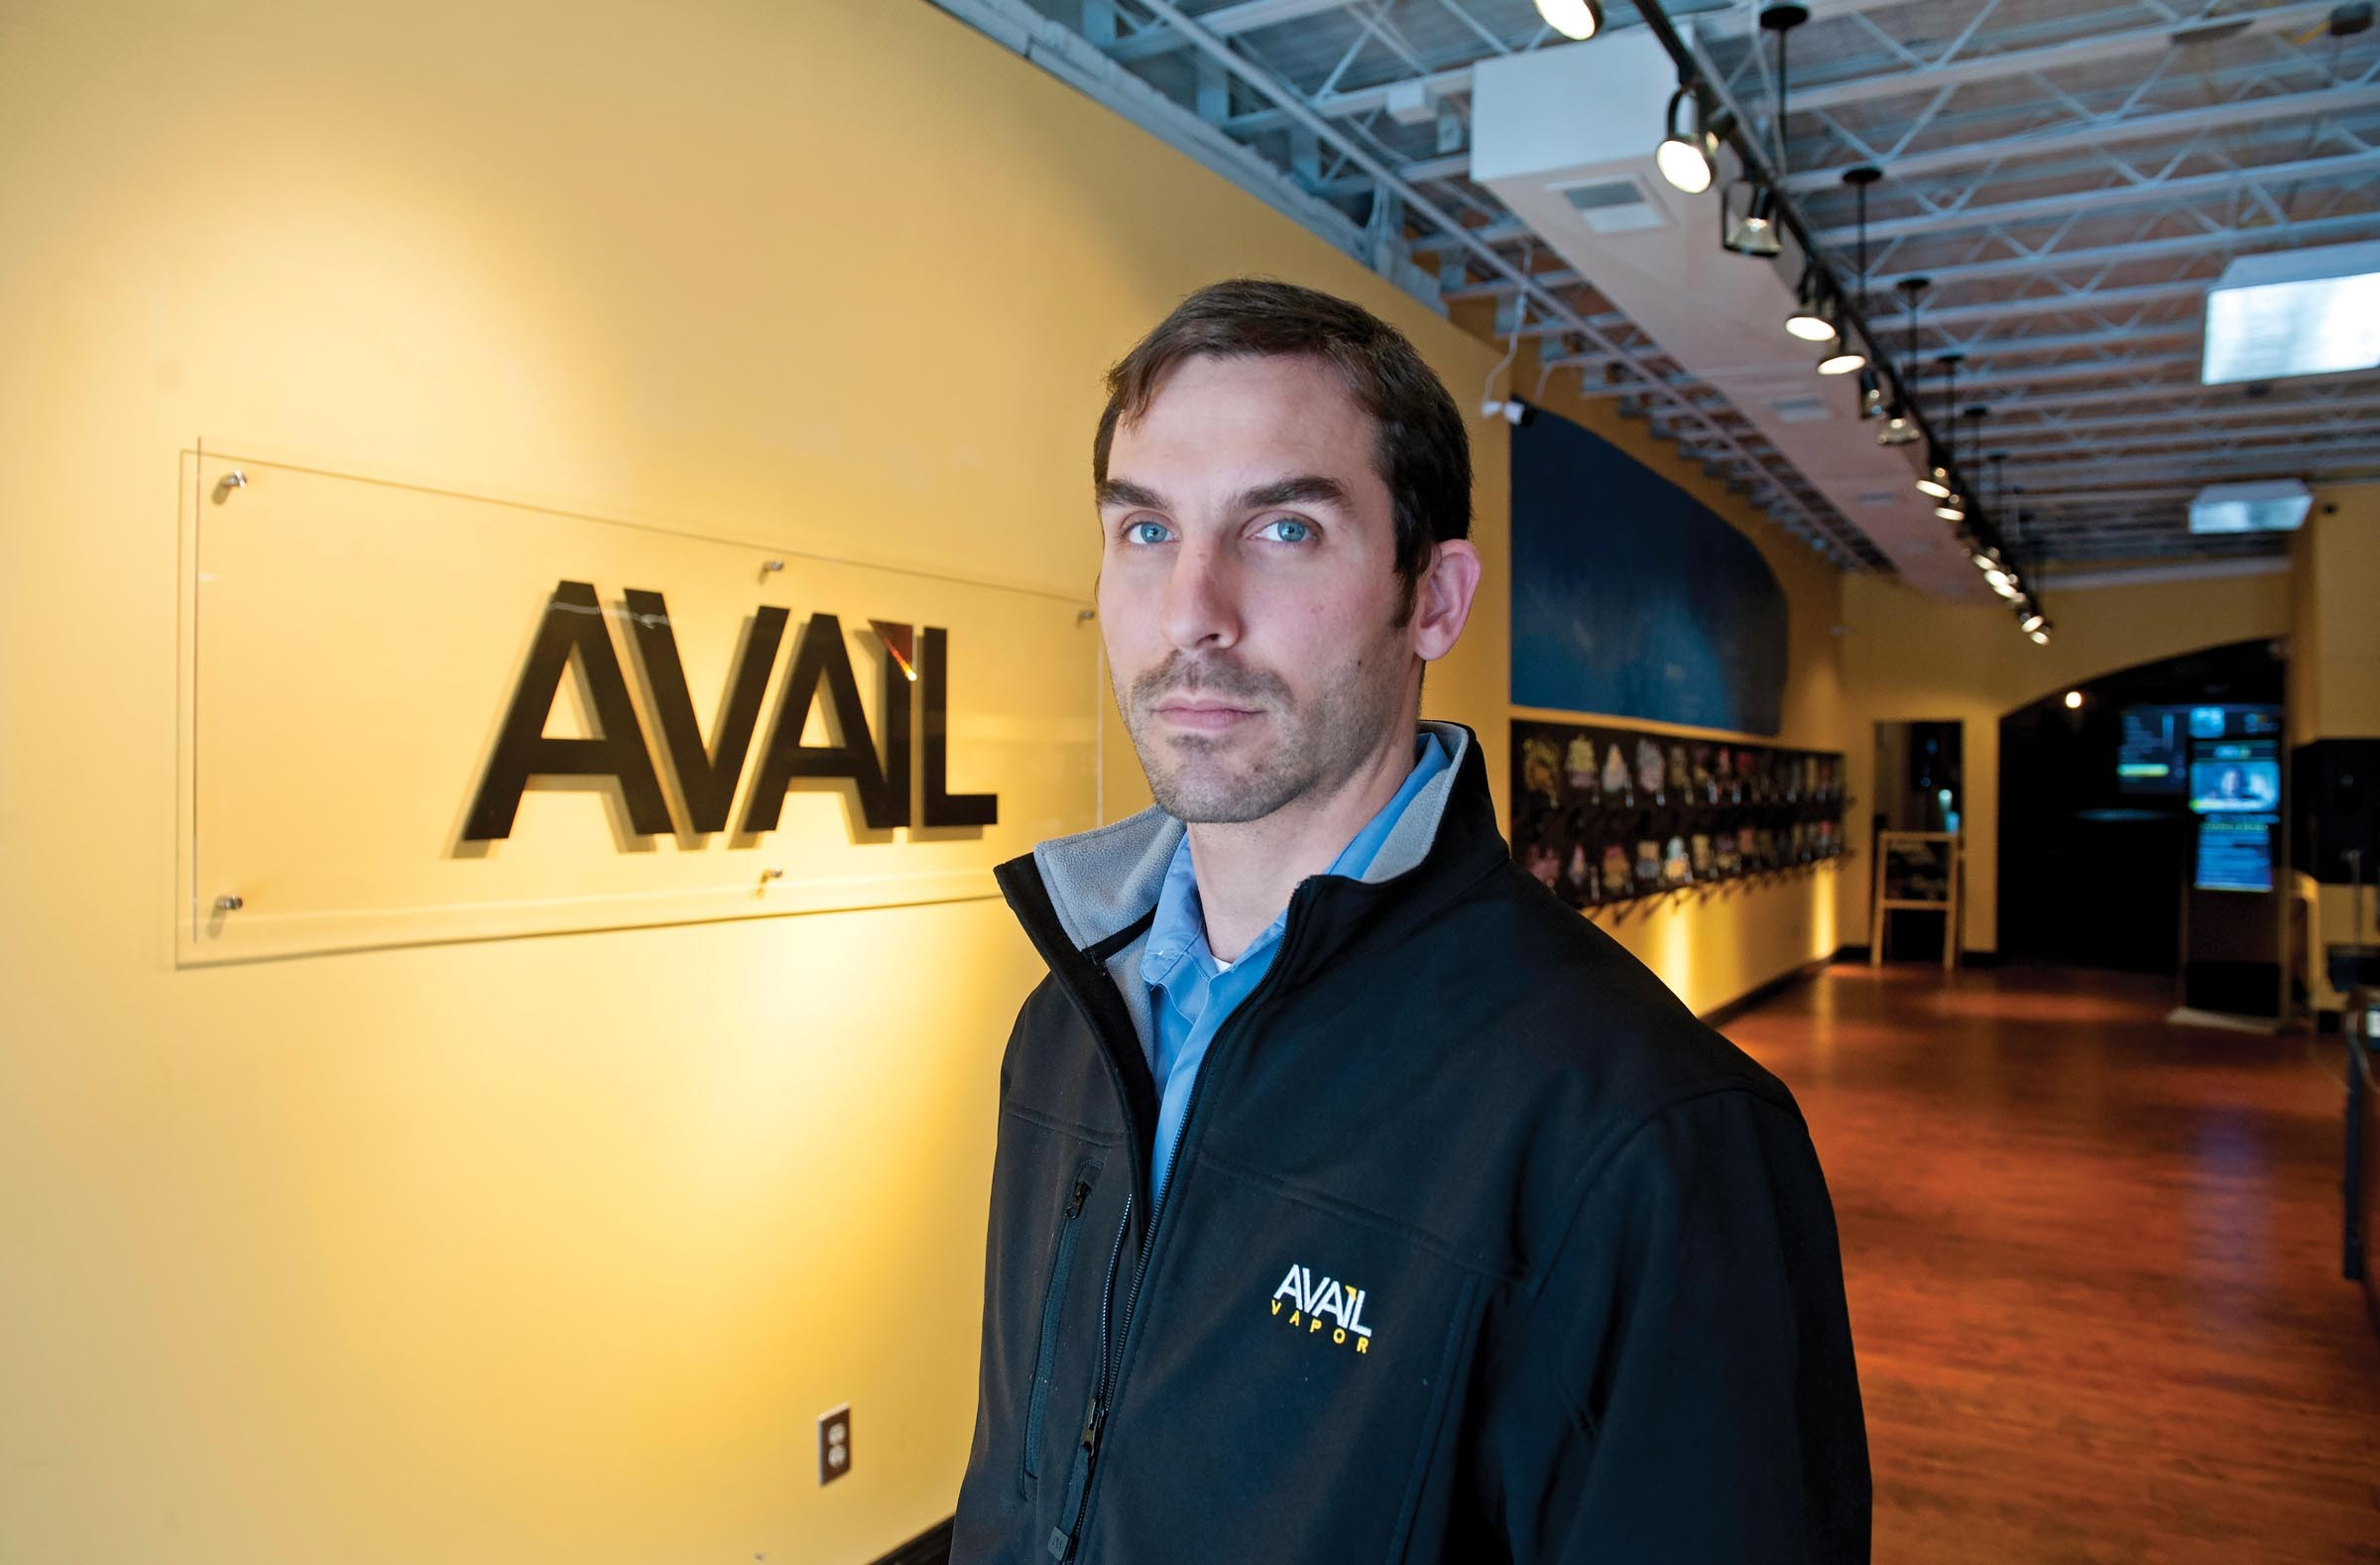 Cole Smith is co-founder of Avail Vapor in Carytown. The store, which opened last summer, makes its own nicotine juice at a factory in Henrico County. - SCOTT ELMQUIST